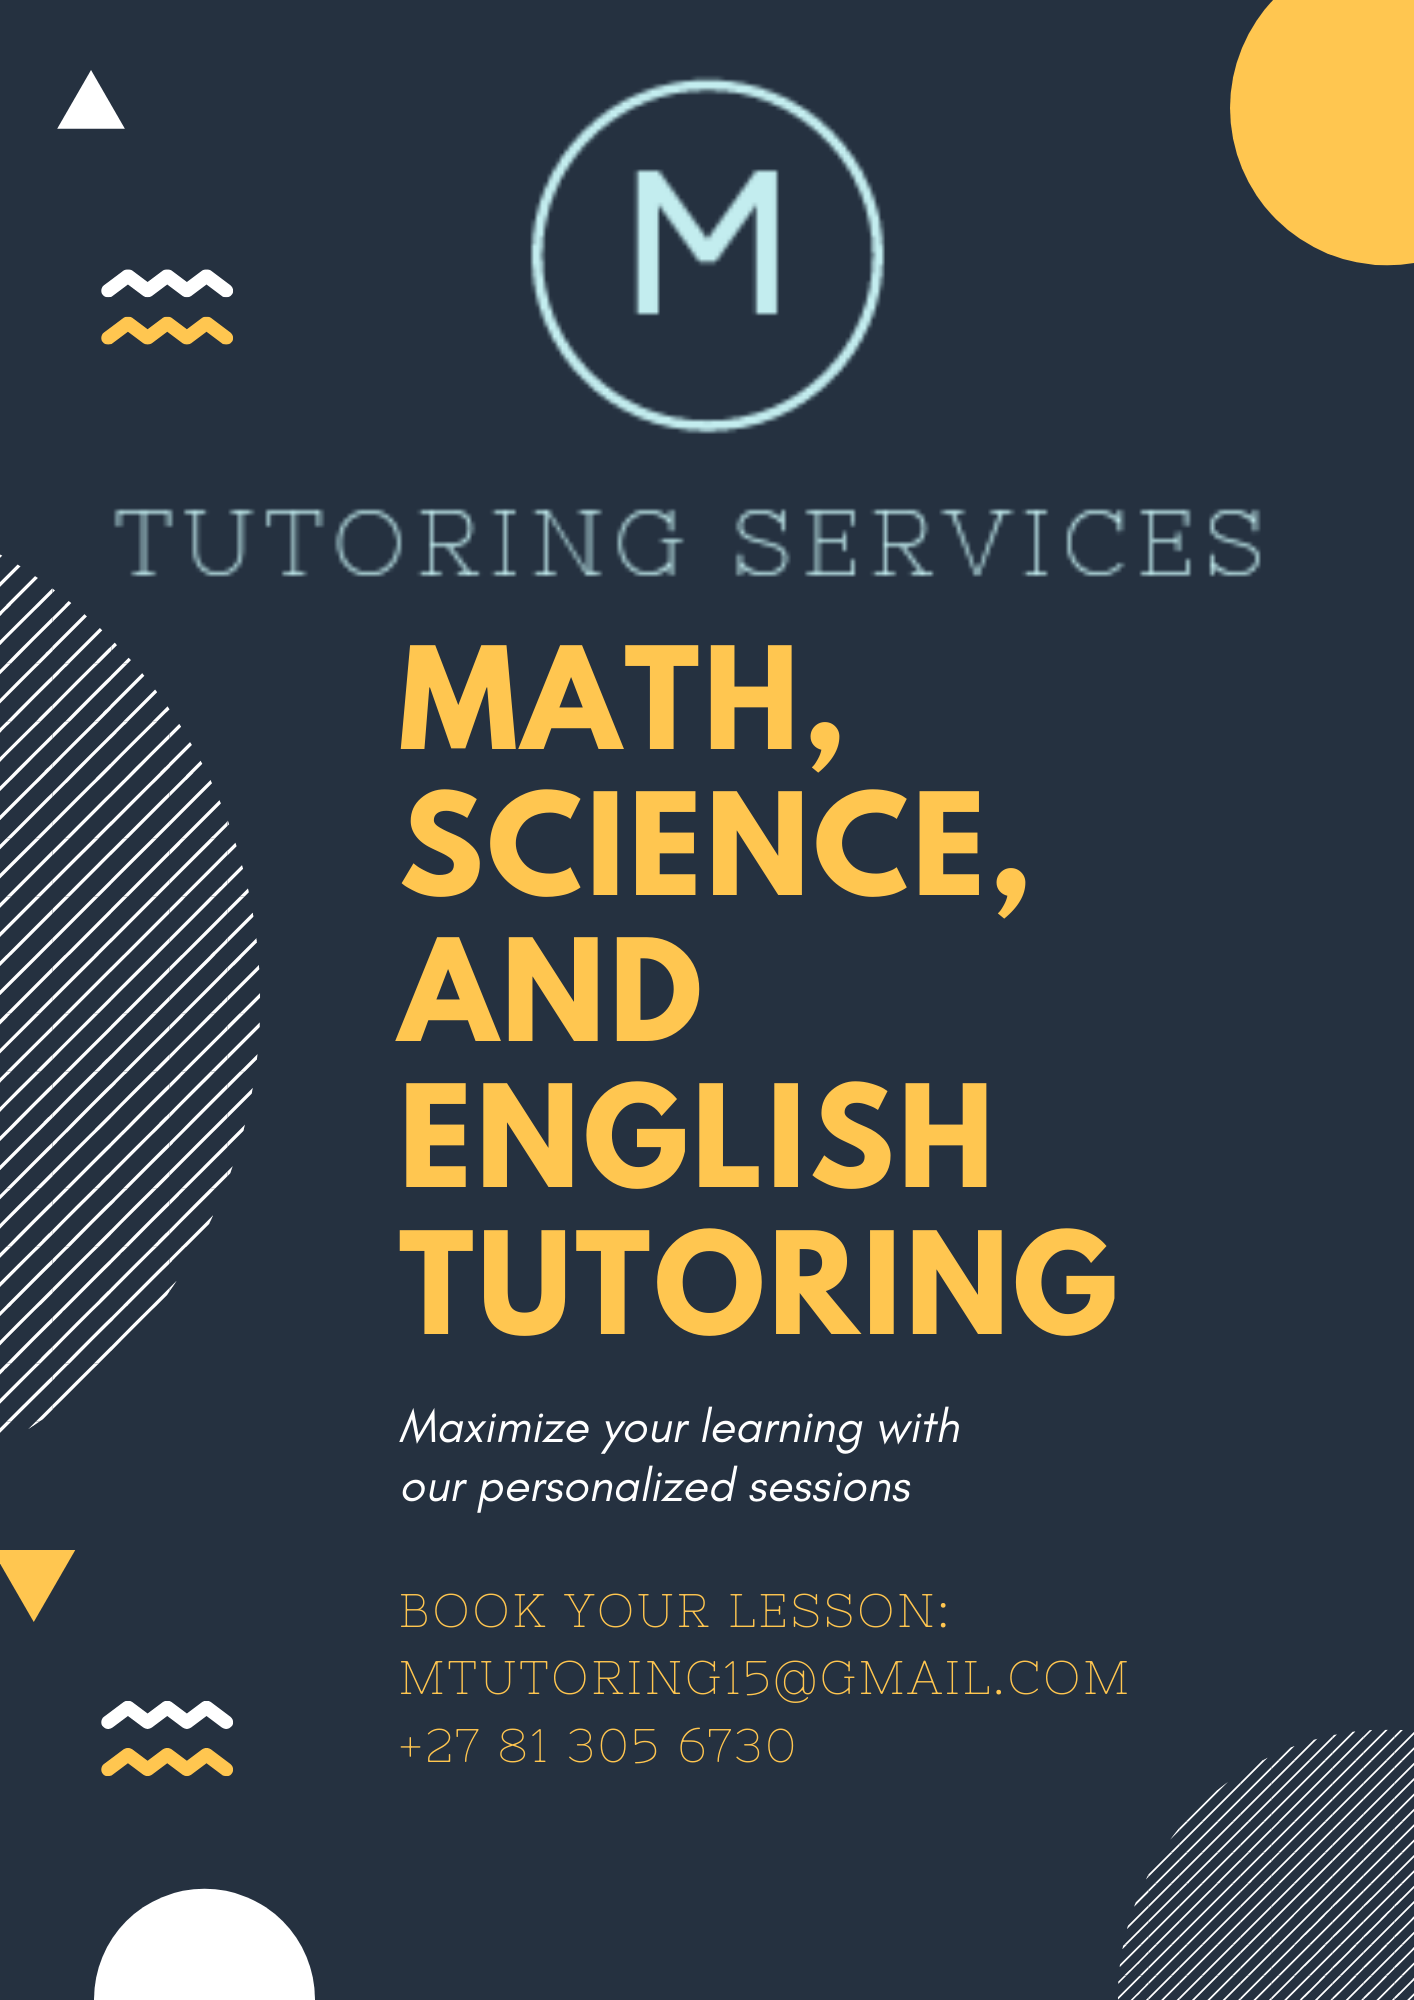 MTUTORING SERVICES